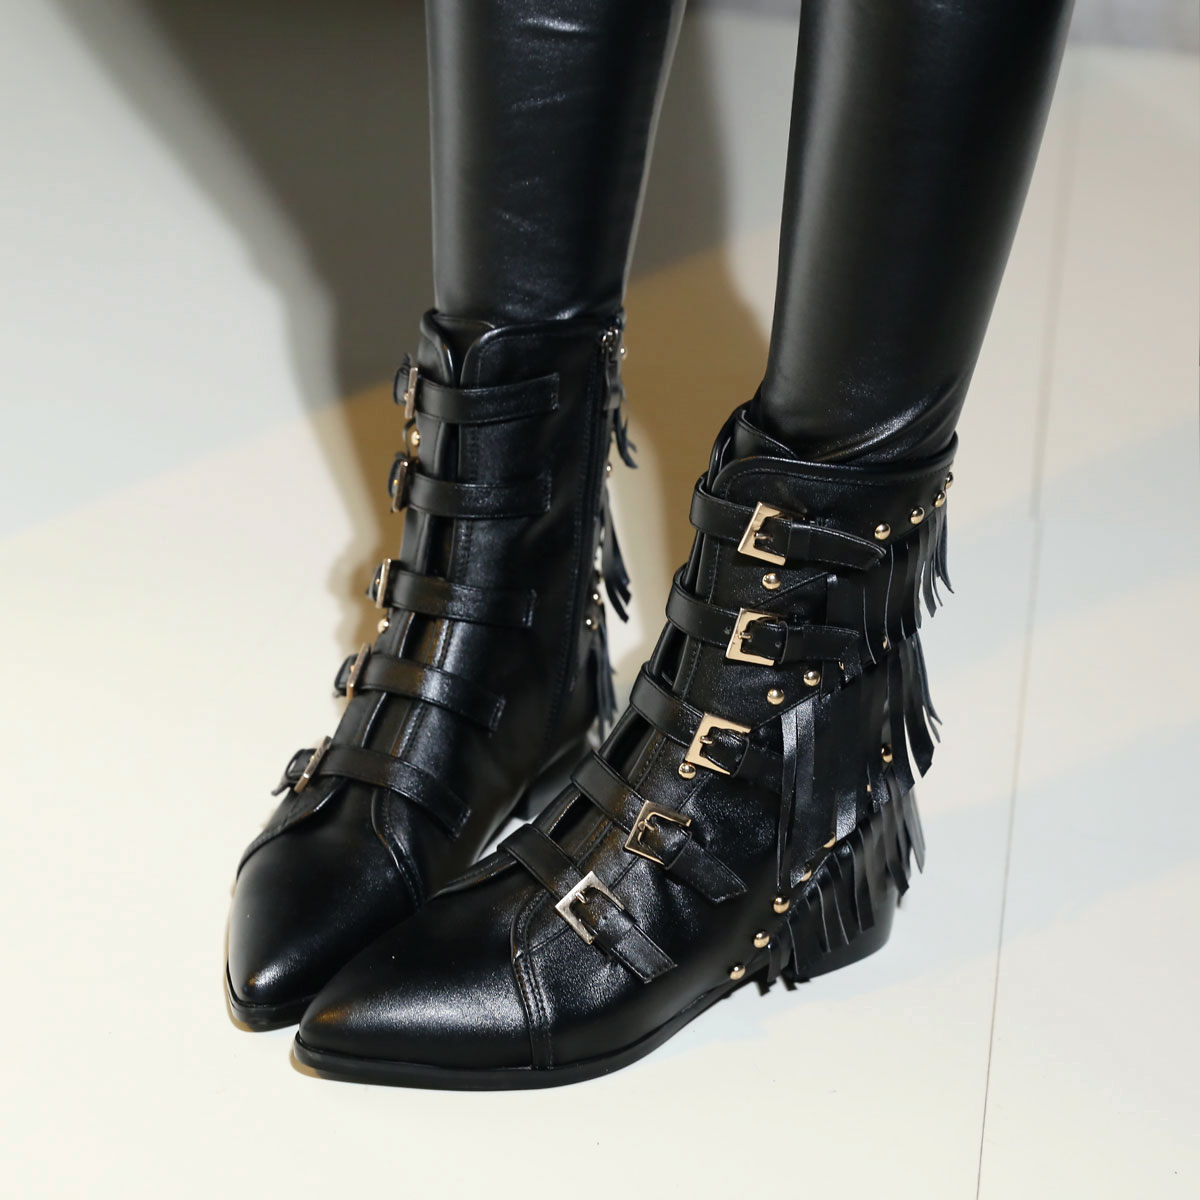 Women Spring Autumn Flats Genuine Leather Side Zipper Buckle Rivets Tassel Pointed Toe Fashion Knight Boots Size 34-39 SXQ0801 spring autumn solid metal decoration flats shoes fashion women flock pointed toe buckle strap ballet flats size 35 40 k257